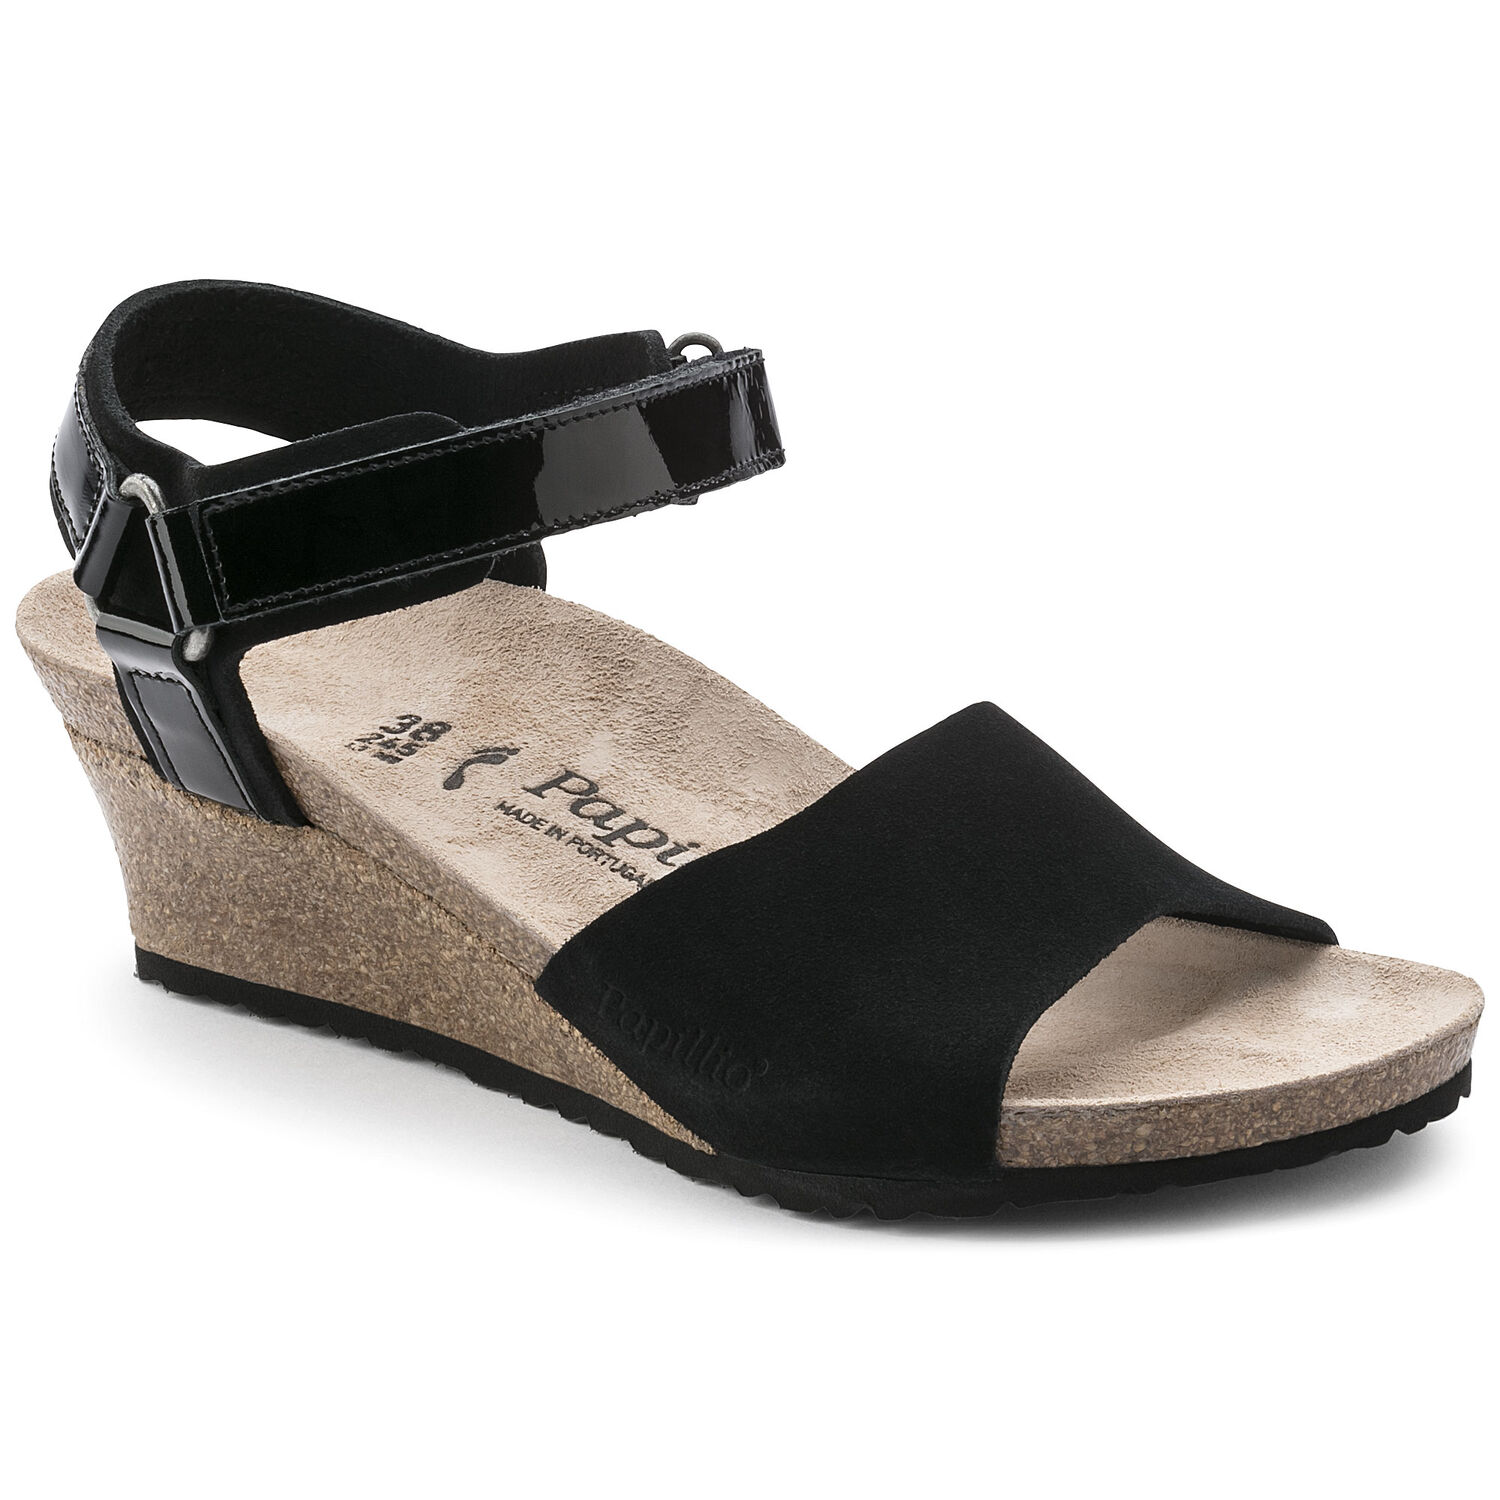 Eve Suede Leather/PVC